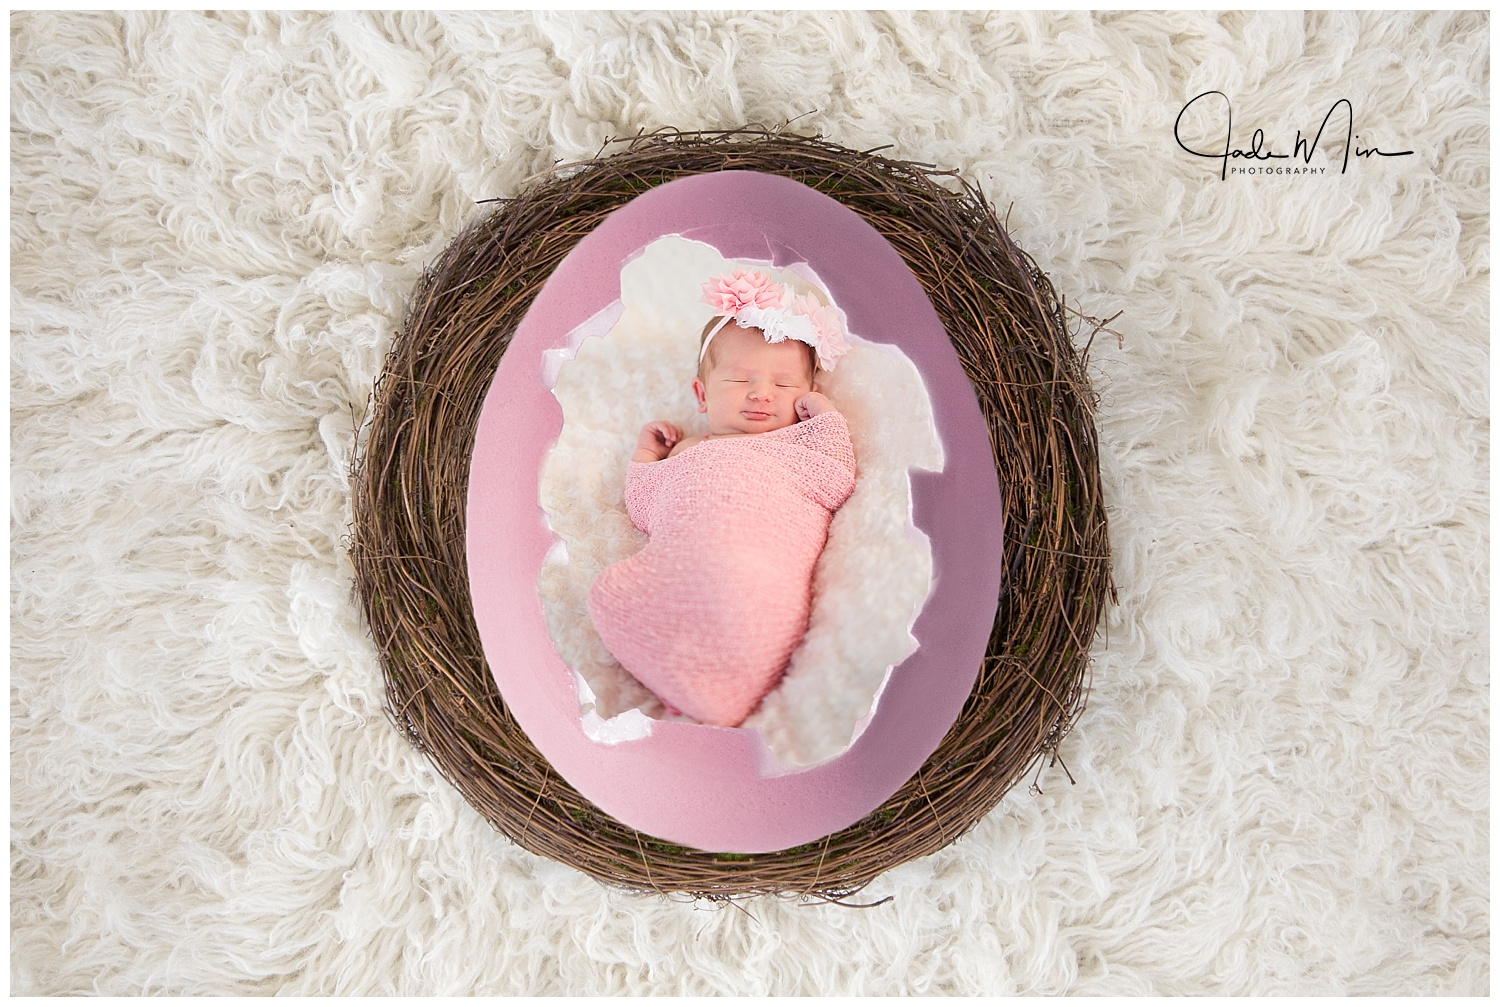 Baby Amelia's newborn session - this depicts her hatching out of an egg - isn't she adorable?